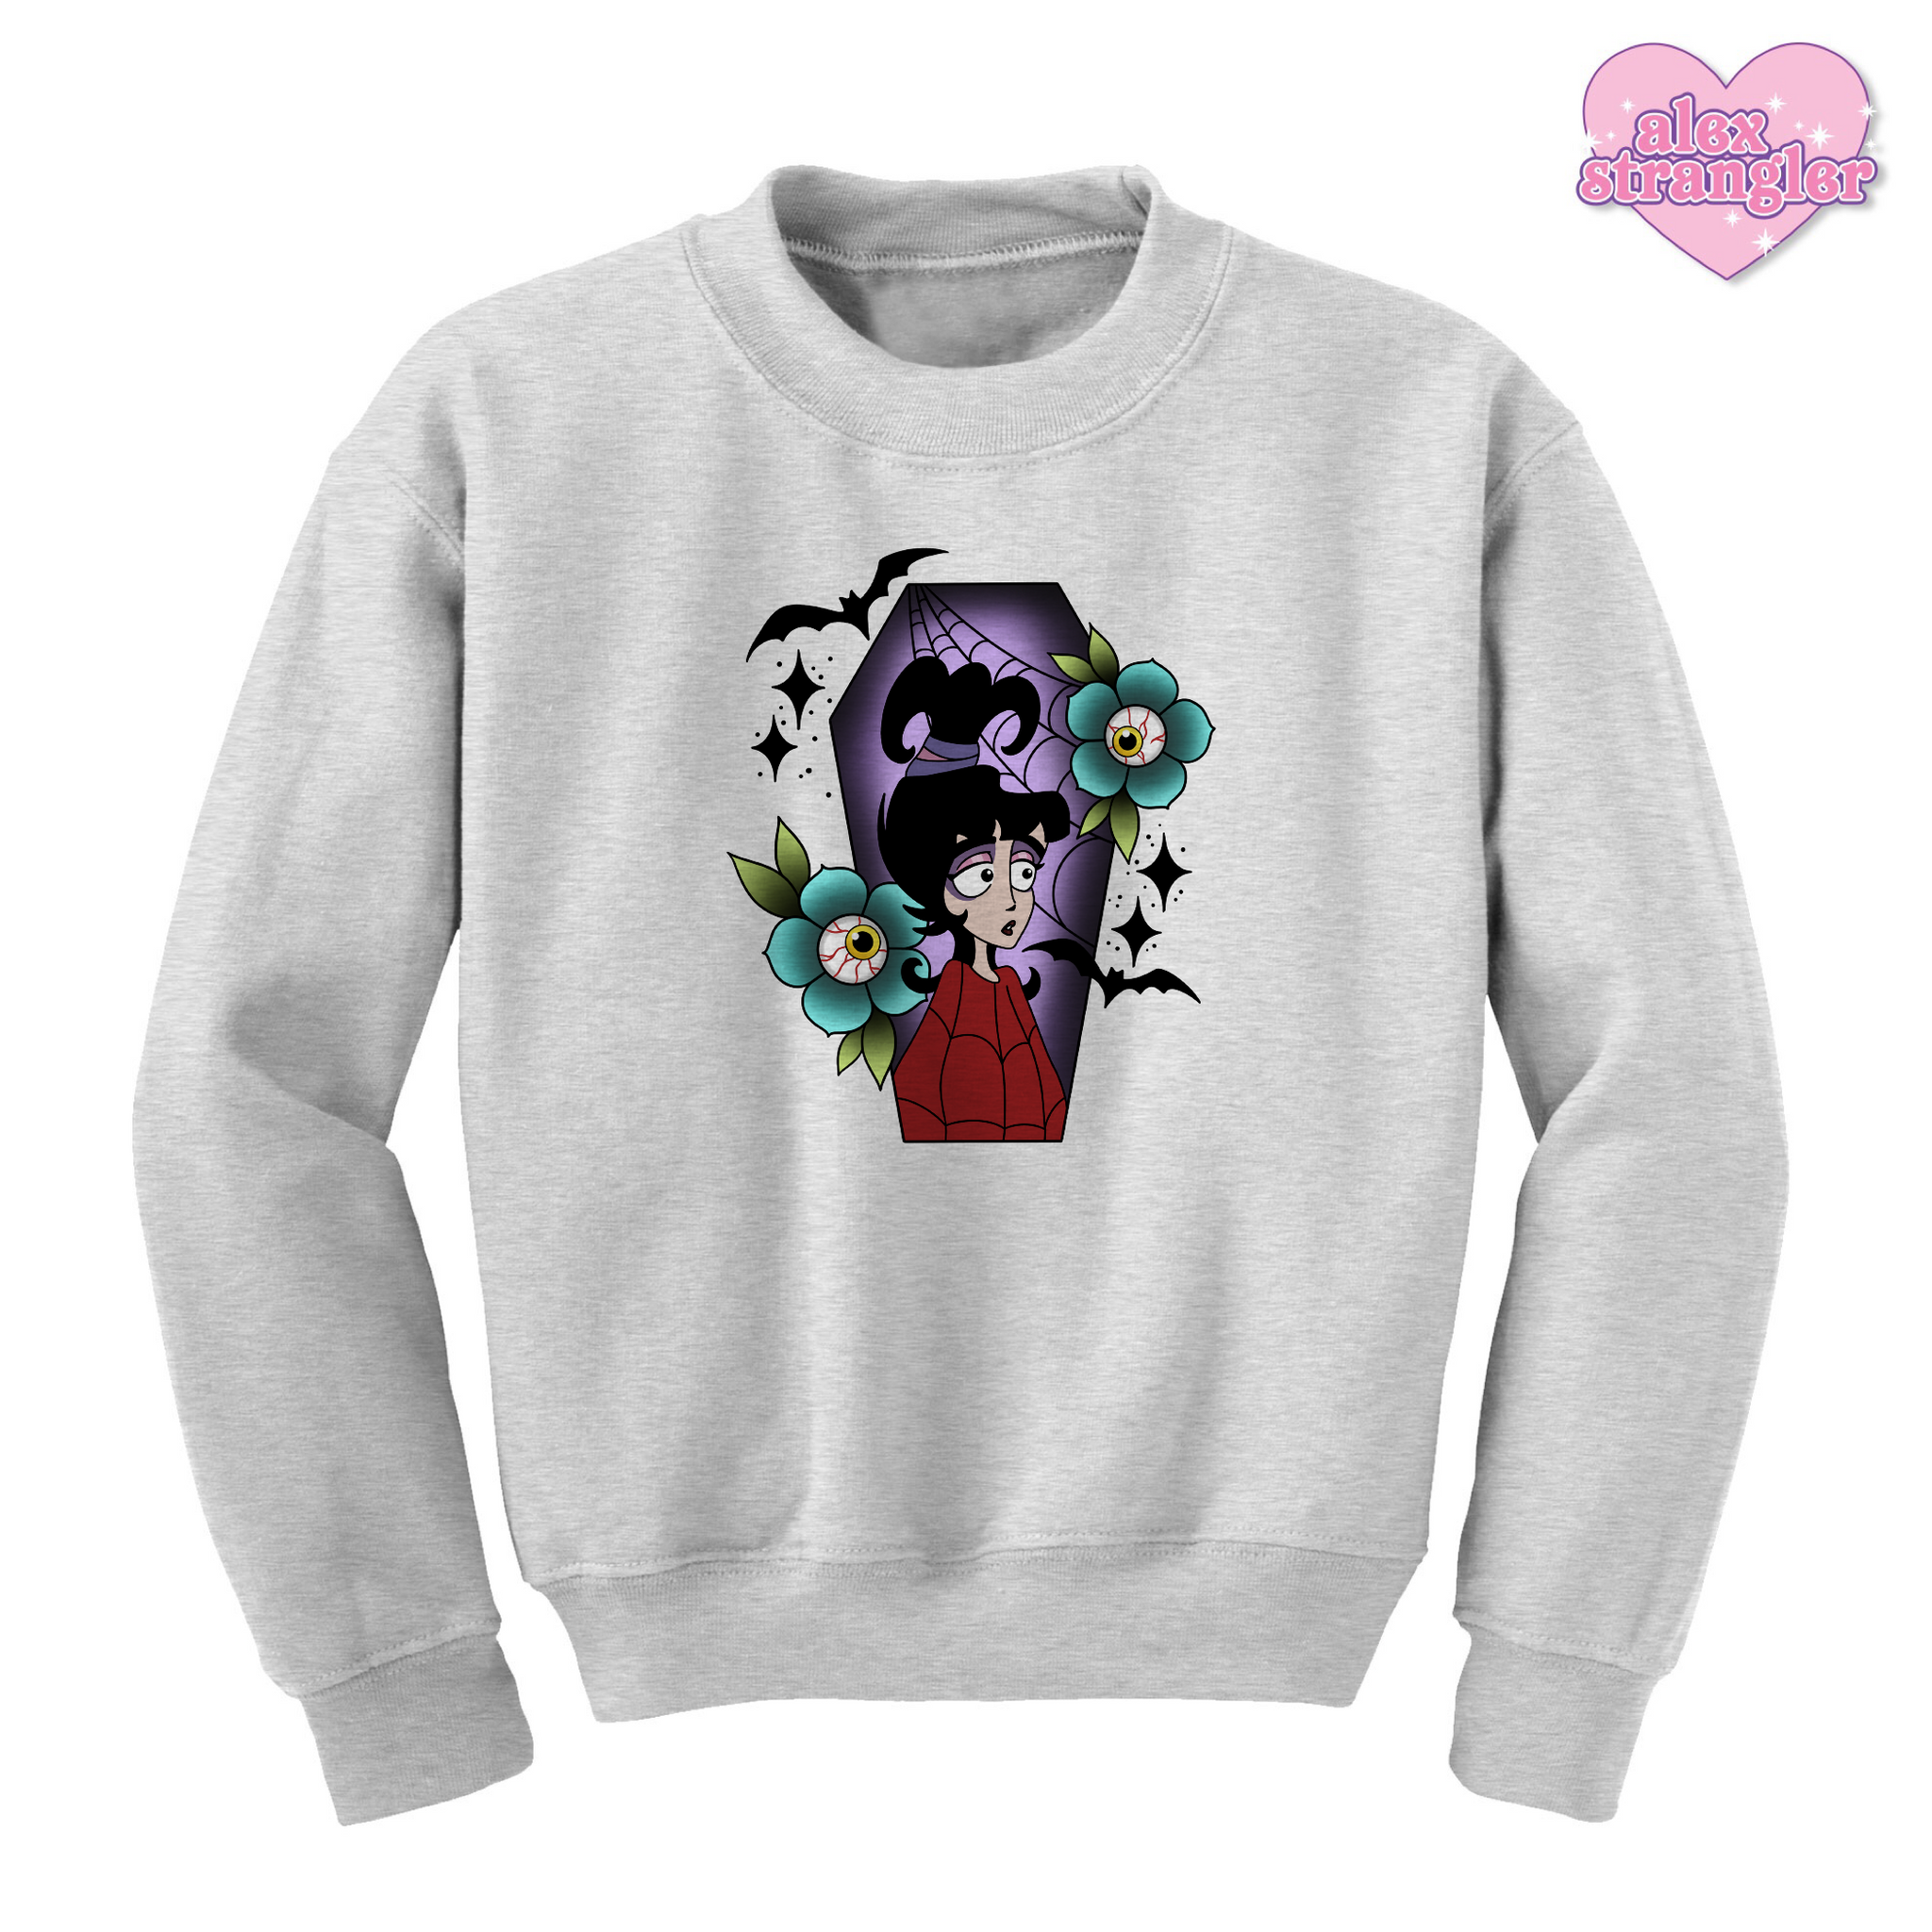 Strange and Unusual - Unisex Crewneck Sweatshirt